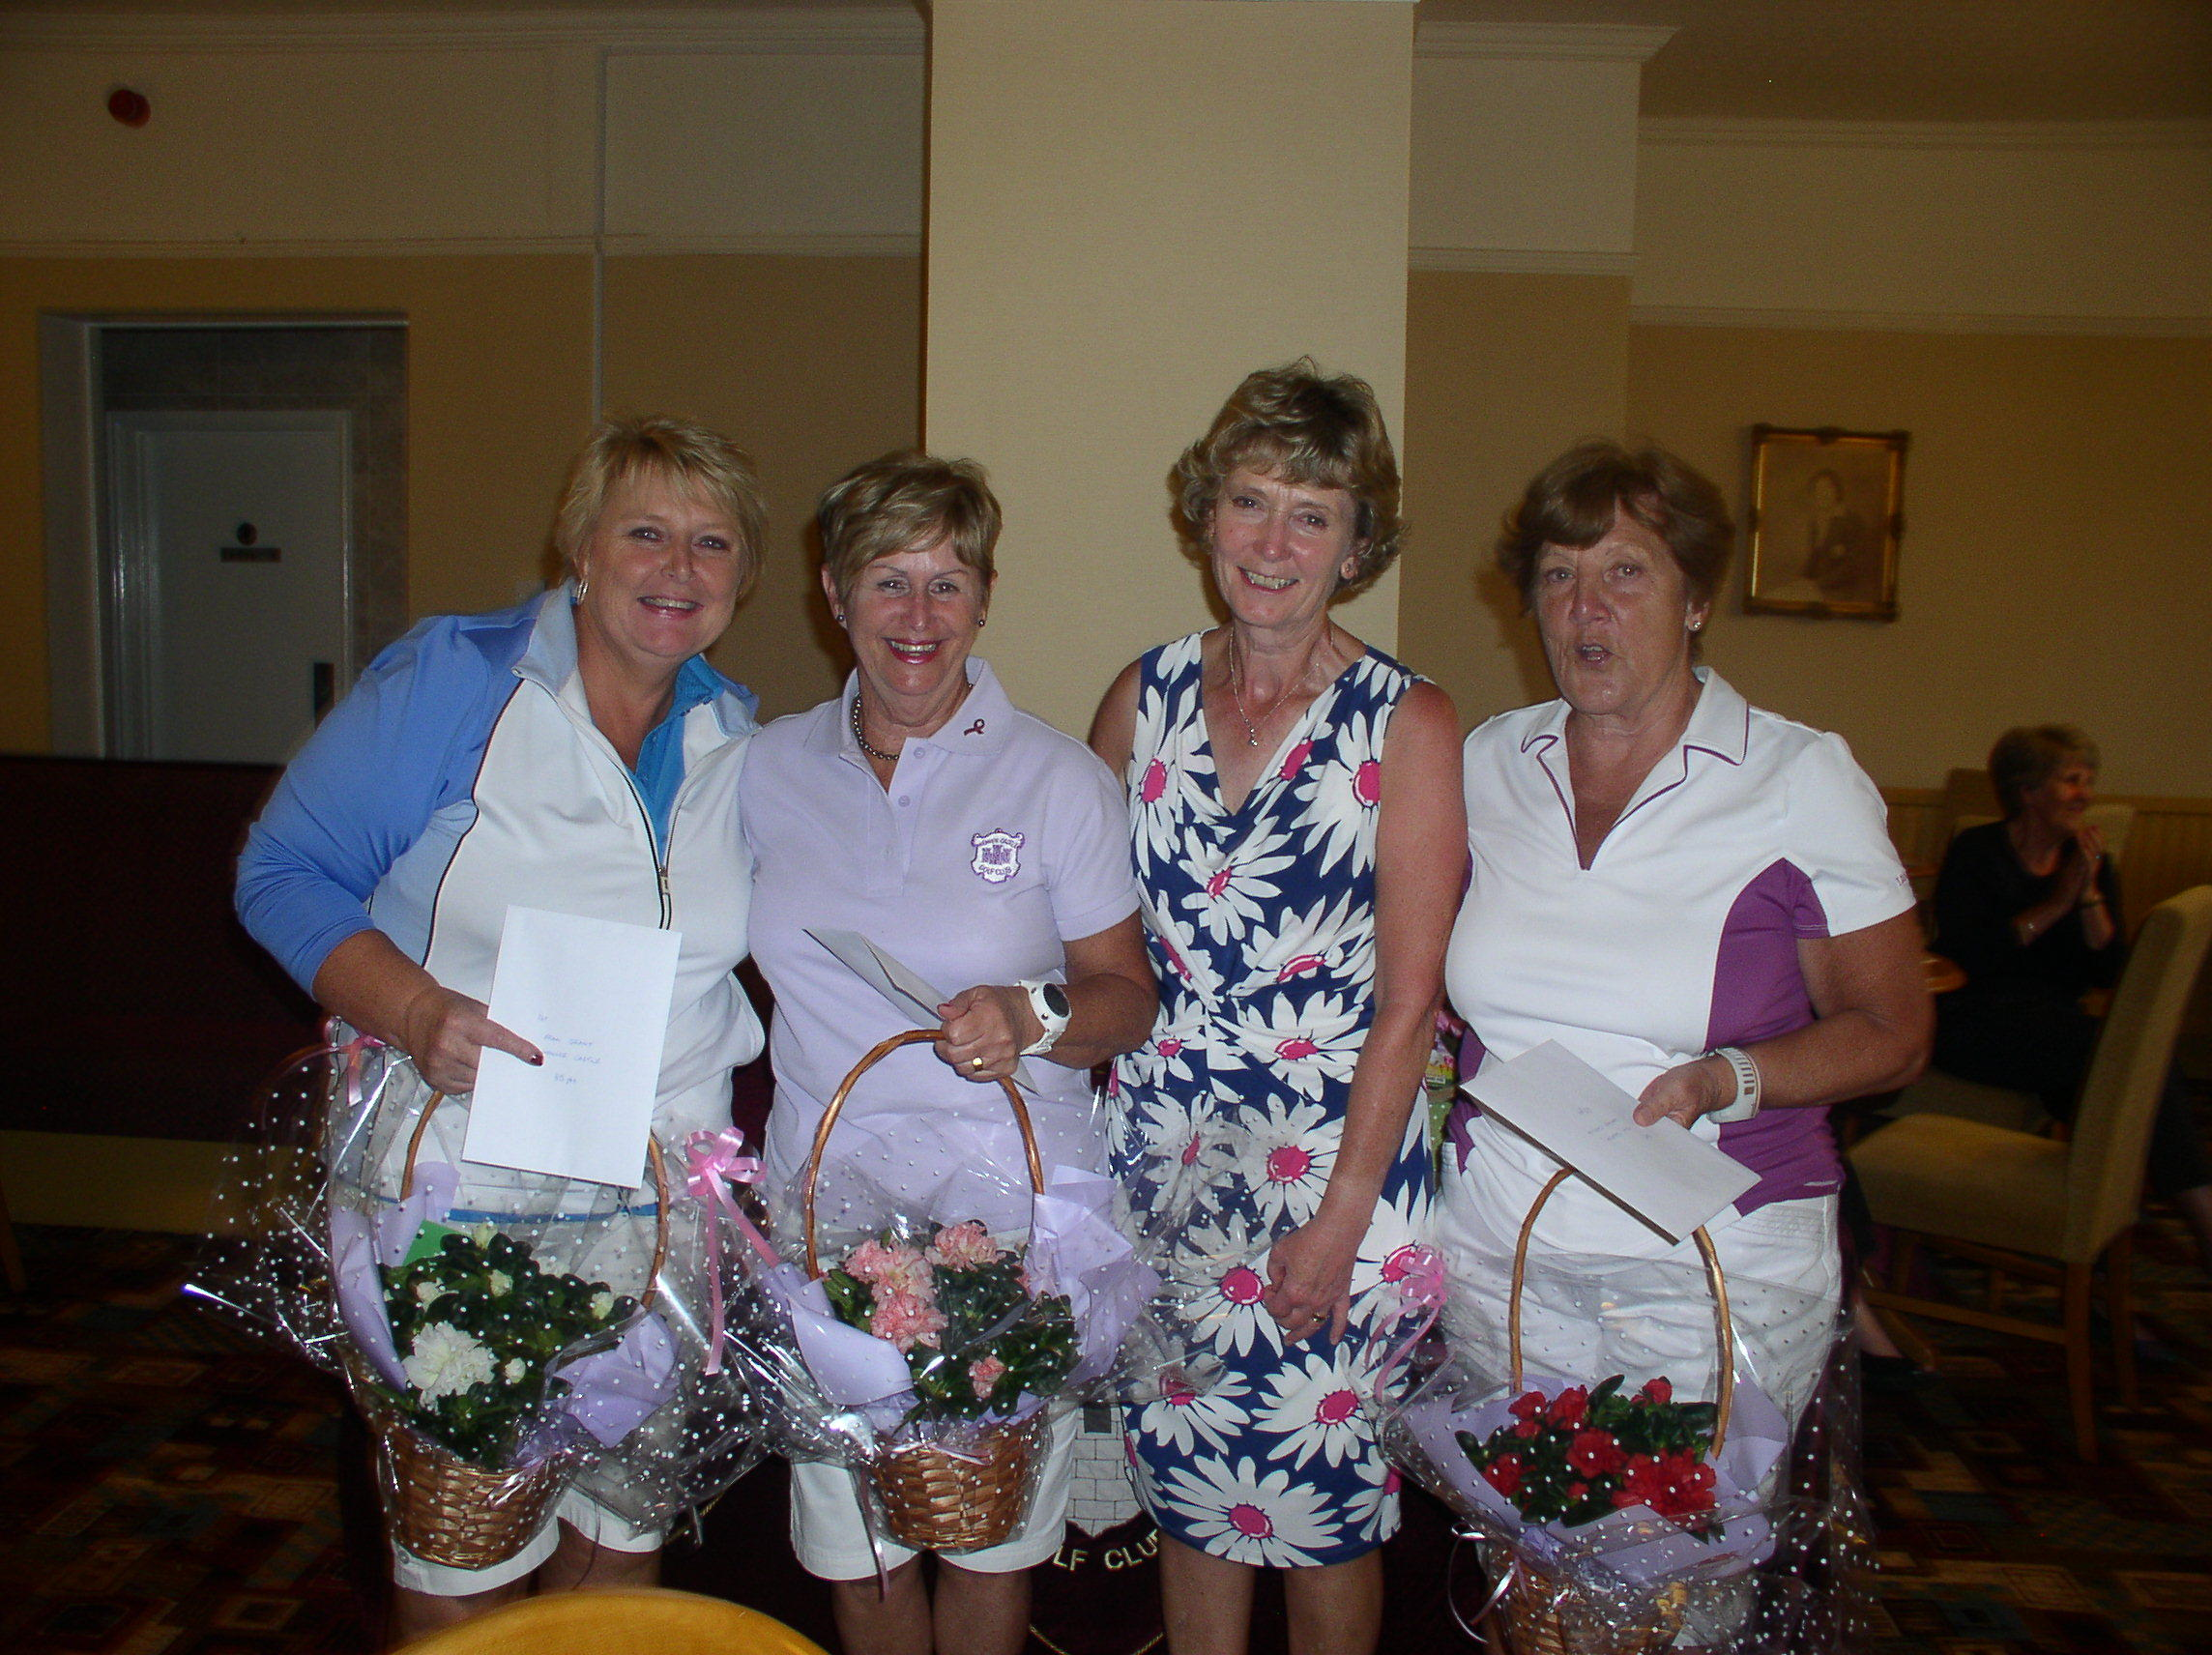 WINNERS: Trish Walker, Lady Captain, presenting the winners, Lynda Campbell, Fran Grant and Tina Church with their prizes and flowers